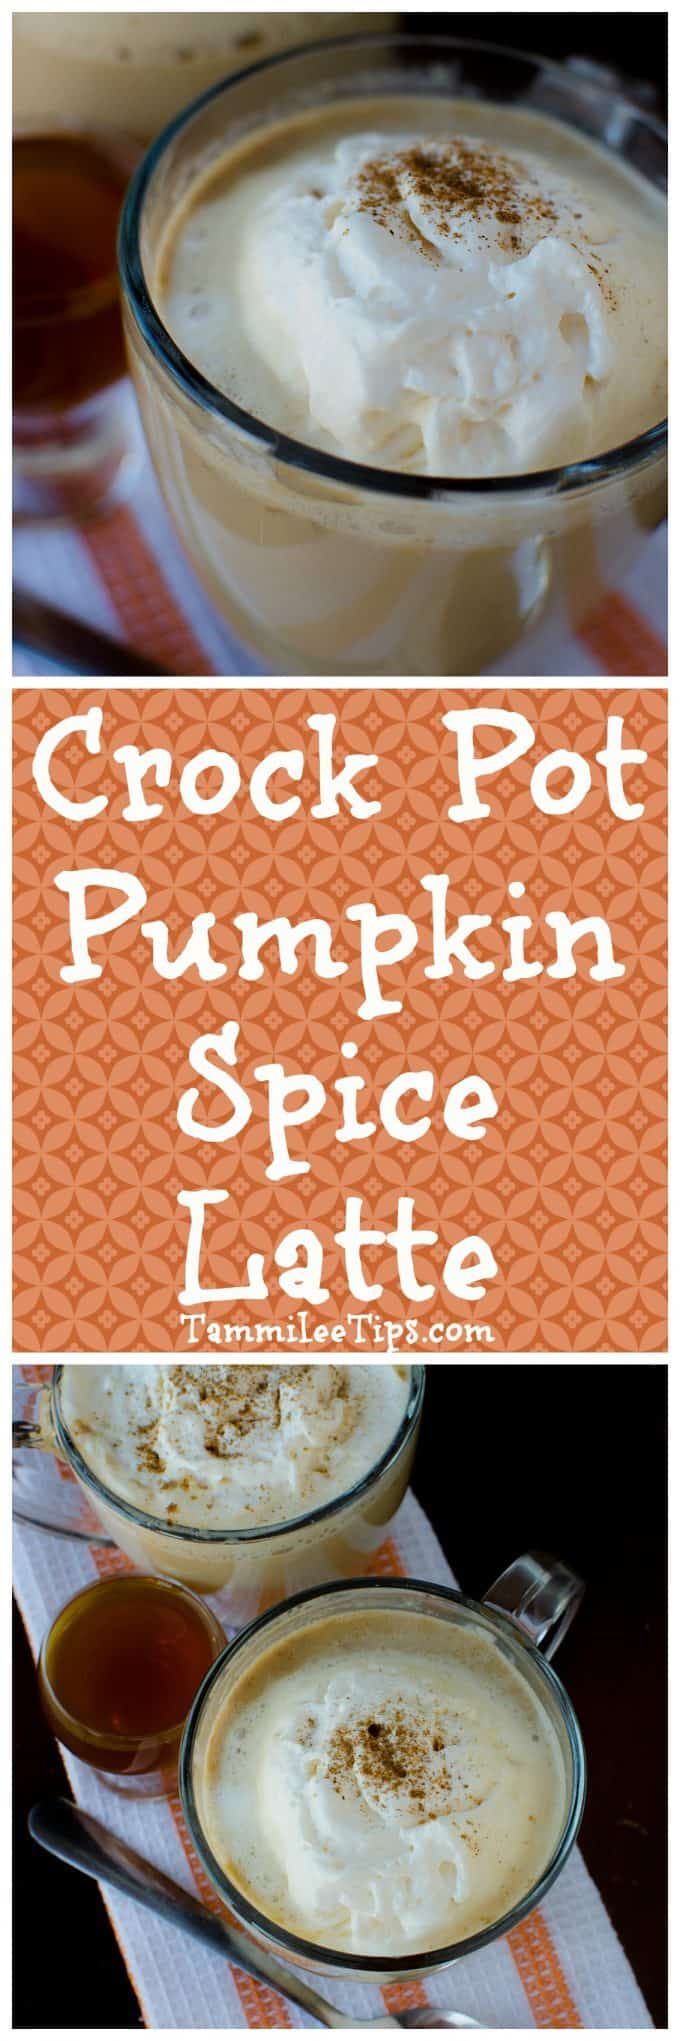 How to make a homemade Crock Pot Pumpkin Spice Latte plus a boozy version! This slow cooker recipe is super easy to make! Similar to Starbucks or your favorite coffee shops!